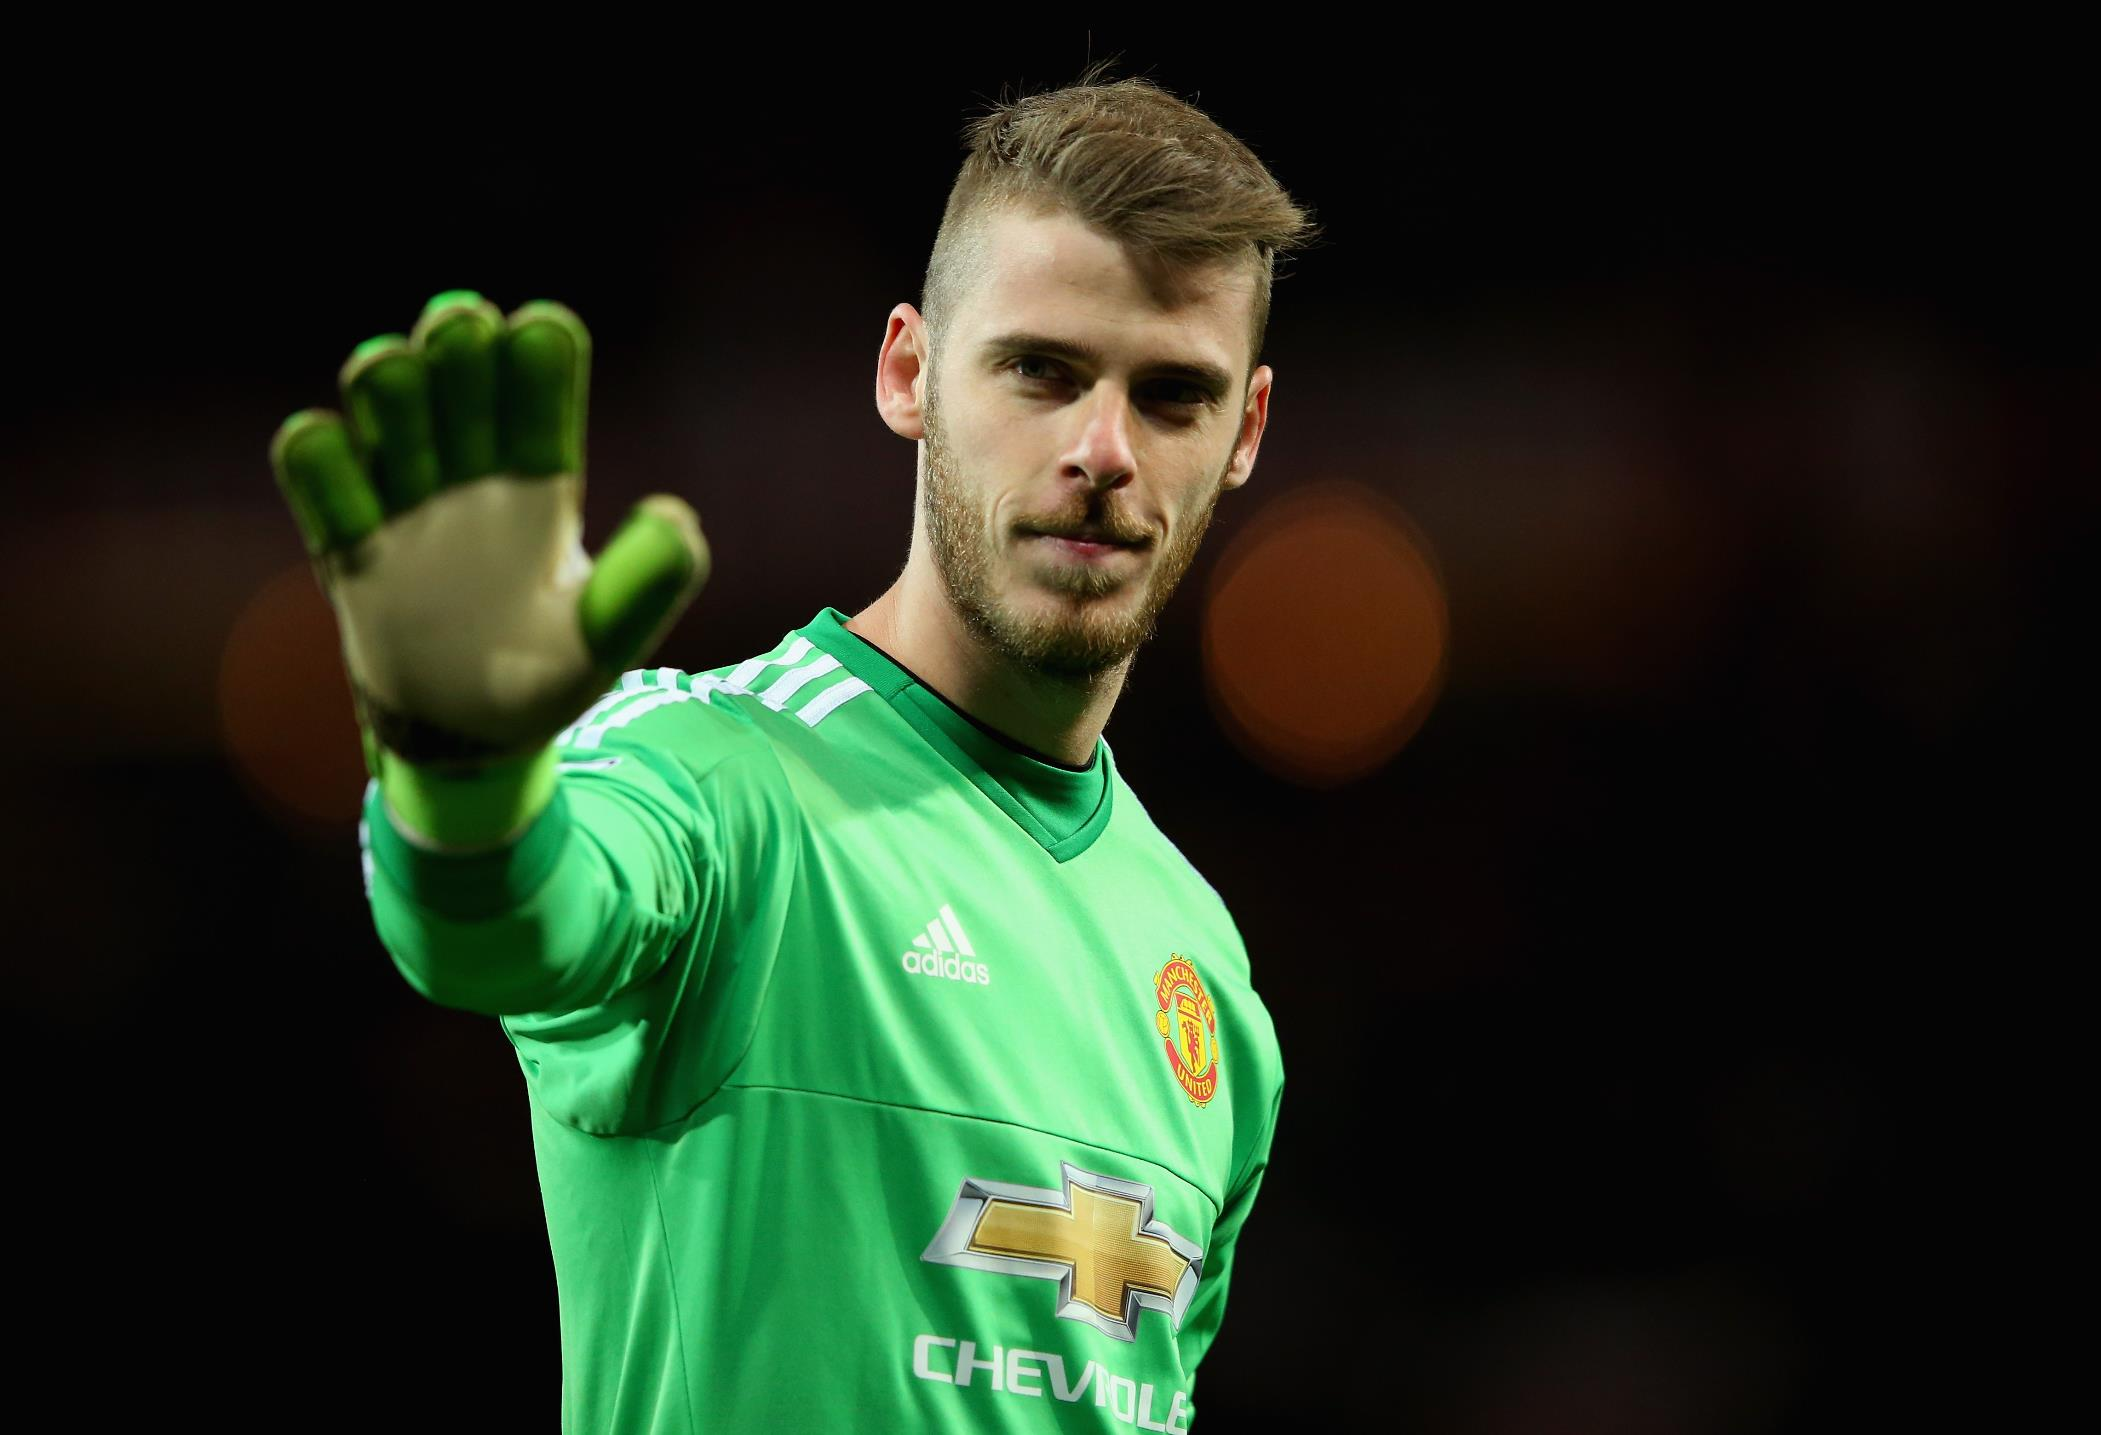 De Gea 'guaranteed' to stay at United: Mourinho